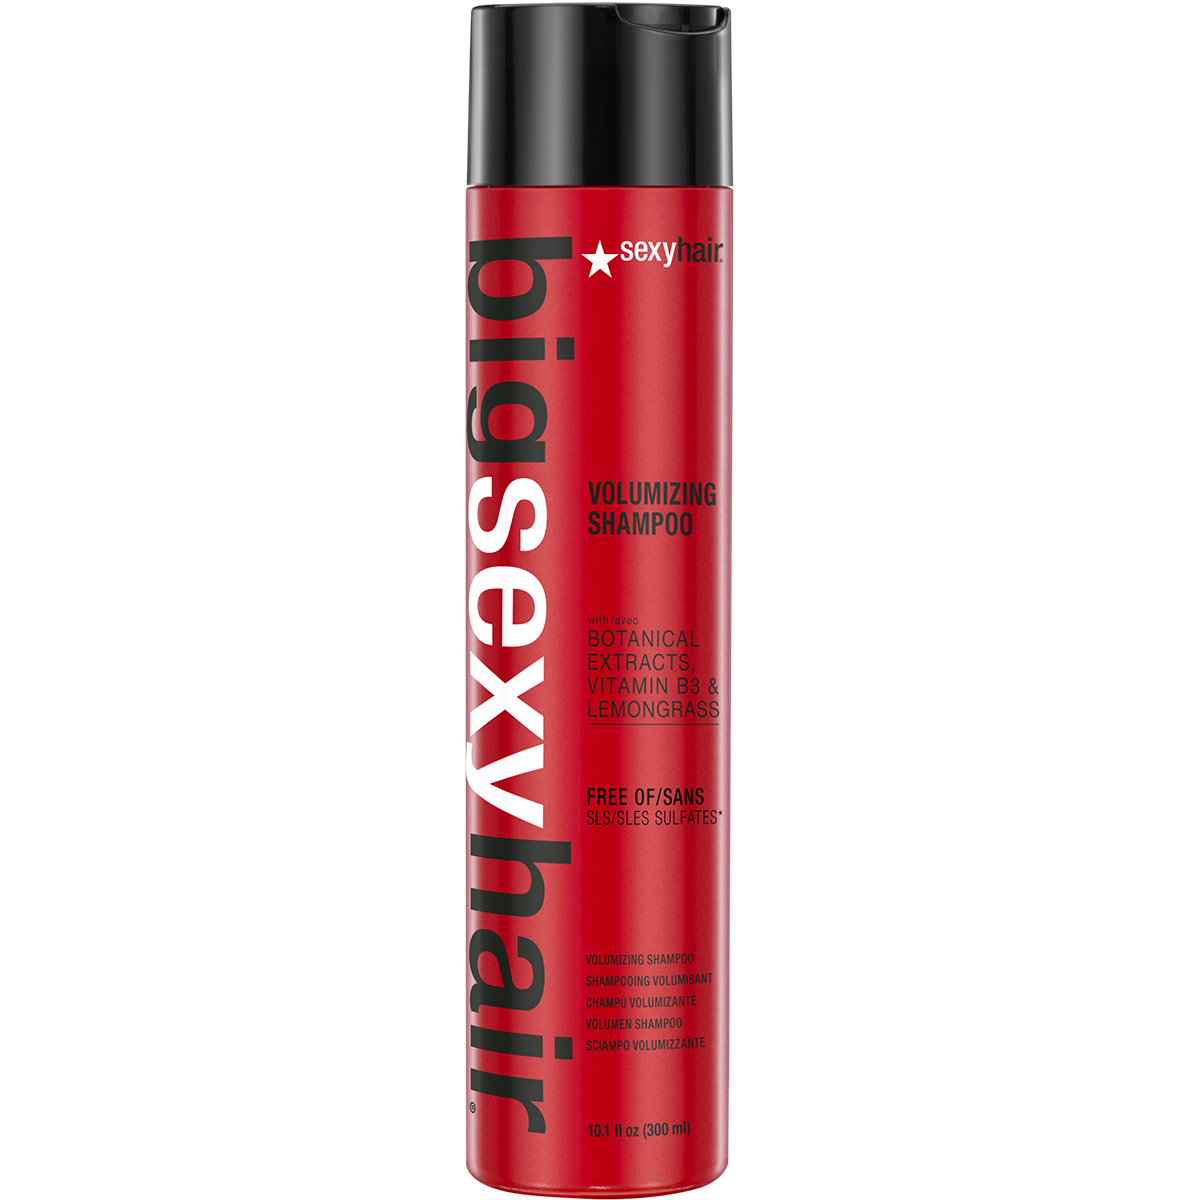 Big Sexy Hair Volumizing Shampoo